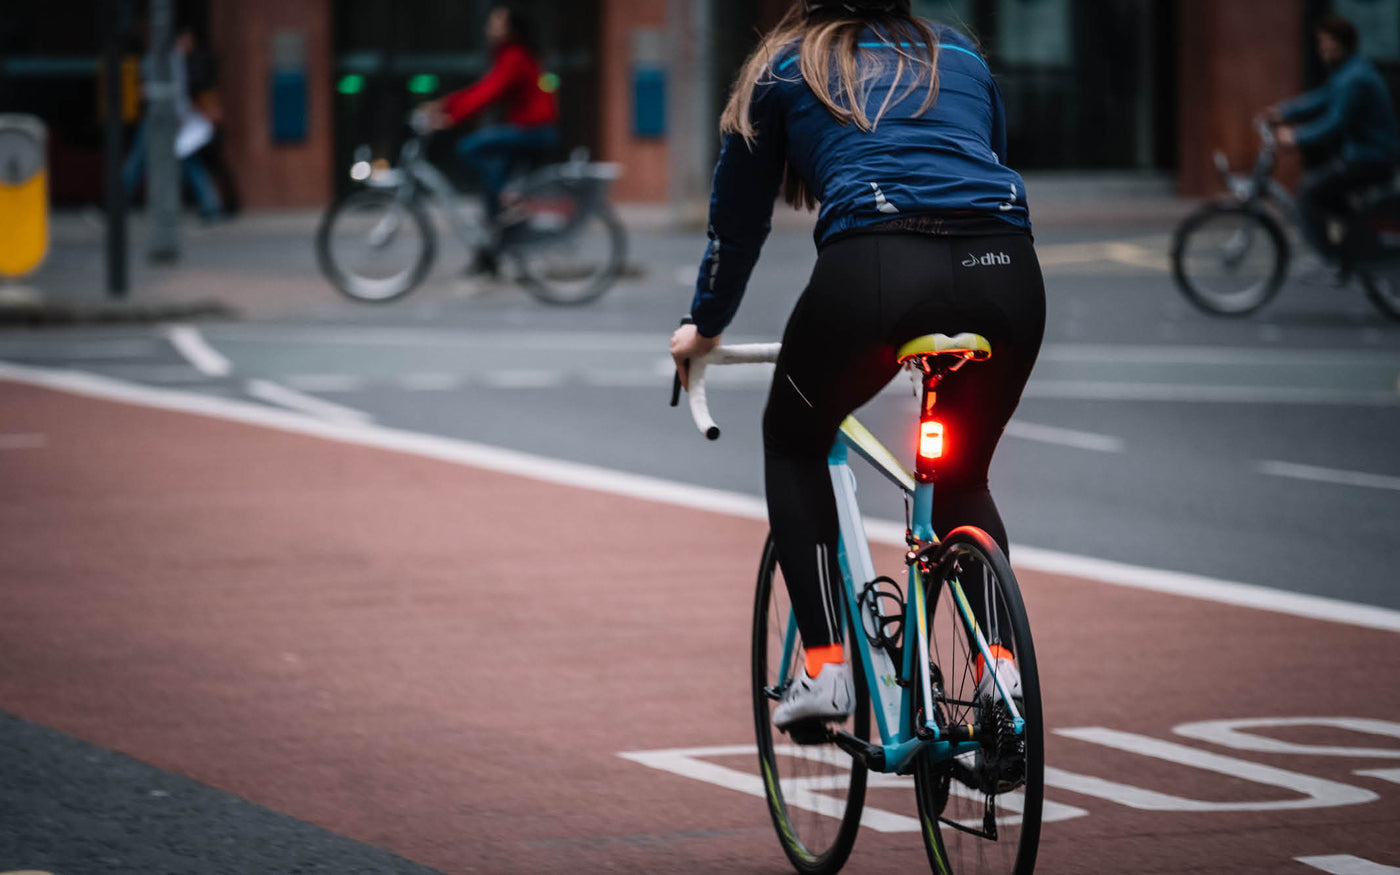 See Sense - Reactive Bike Lights for Safer Rides | See Sense